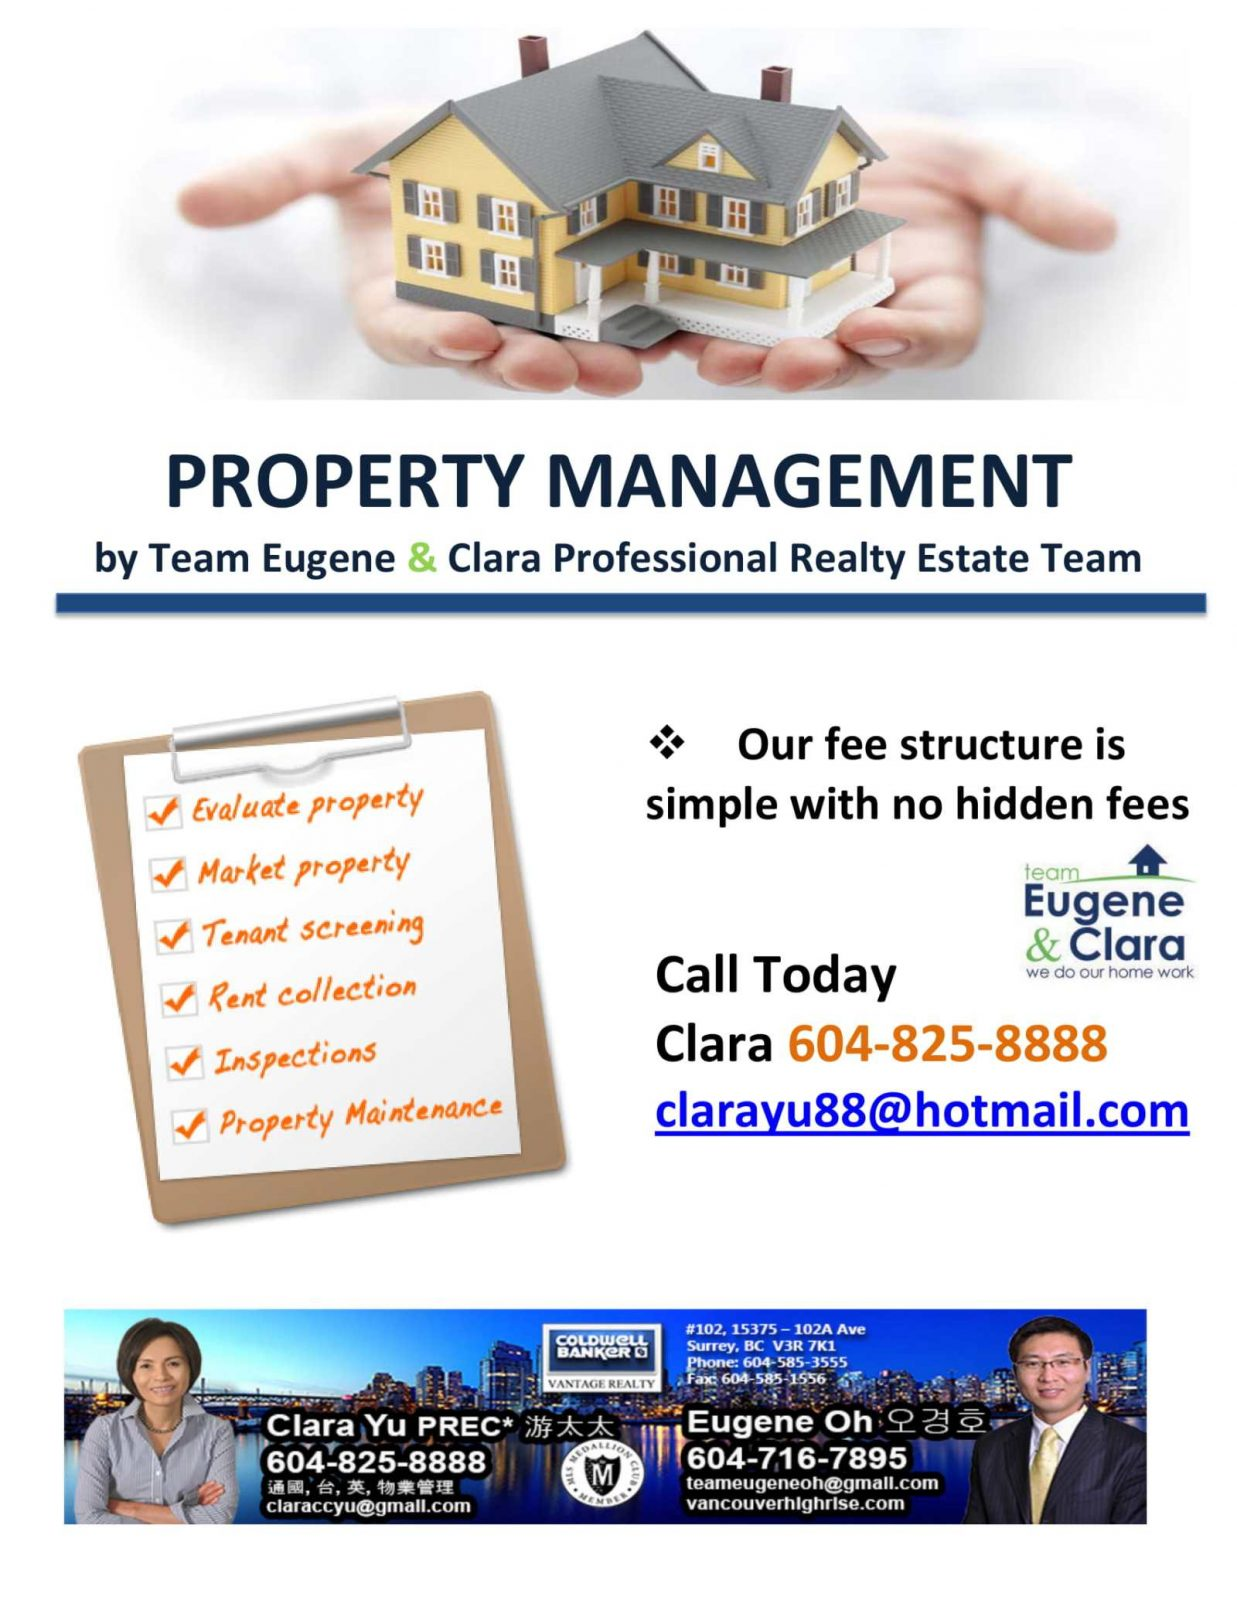 Property-management image.jpg